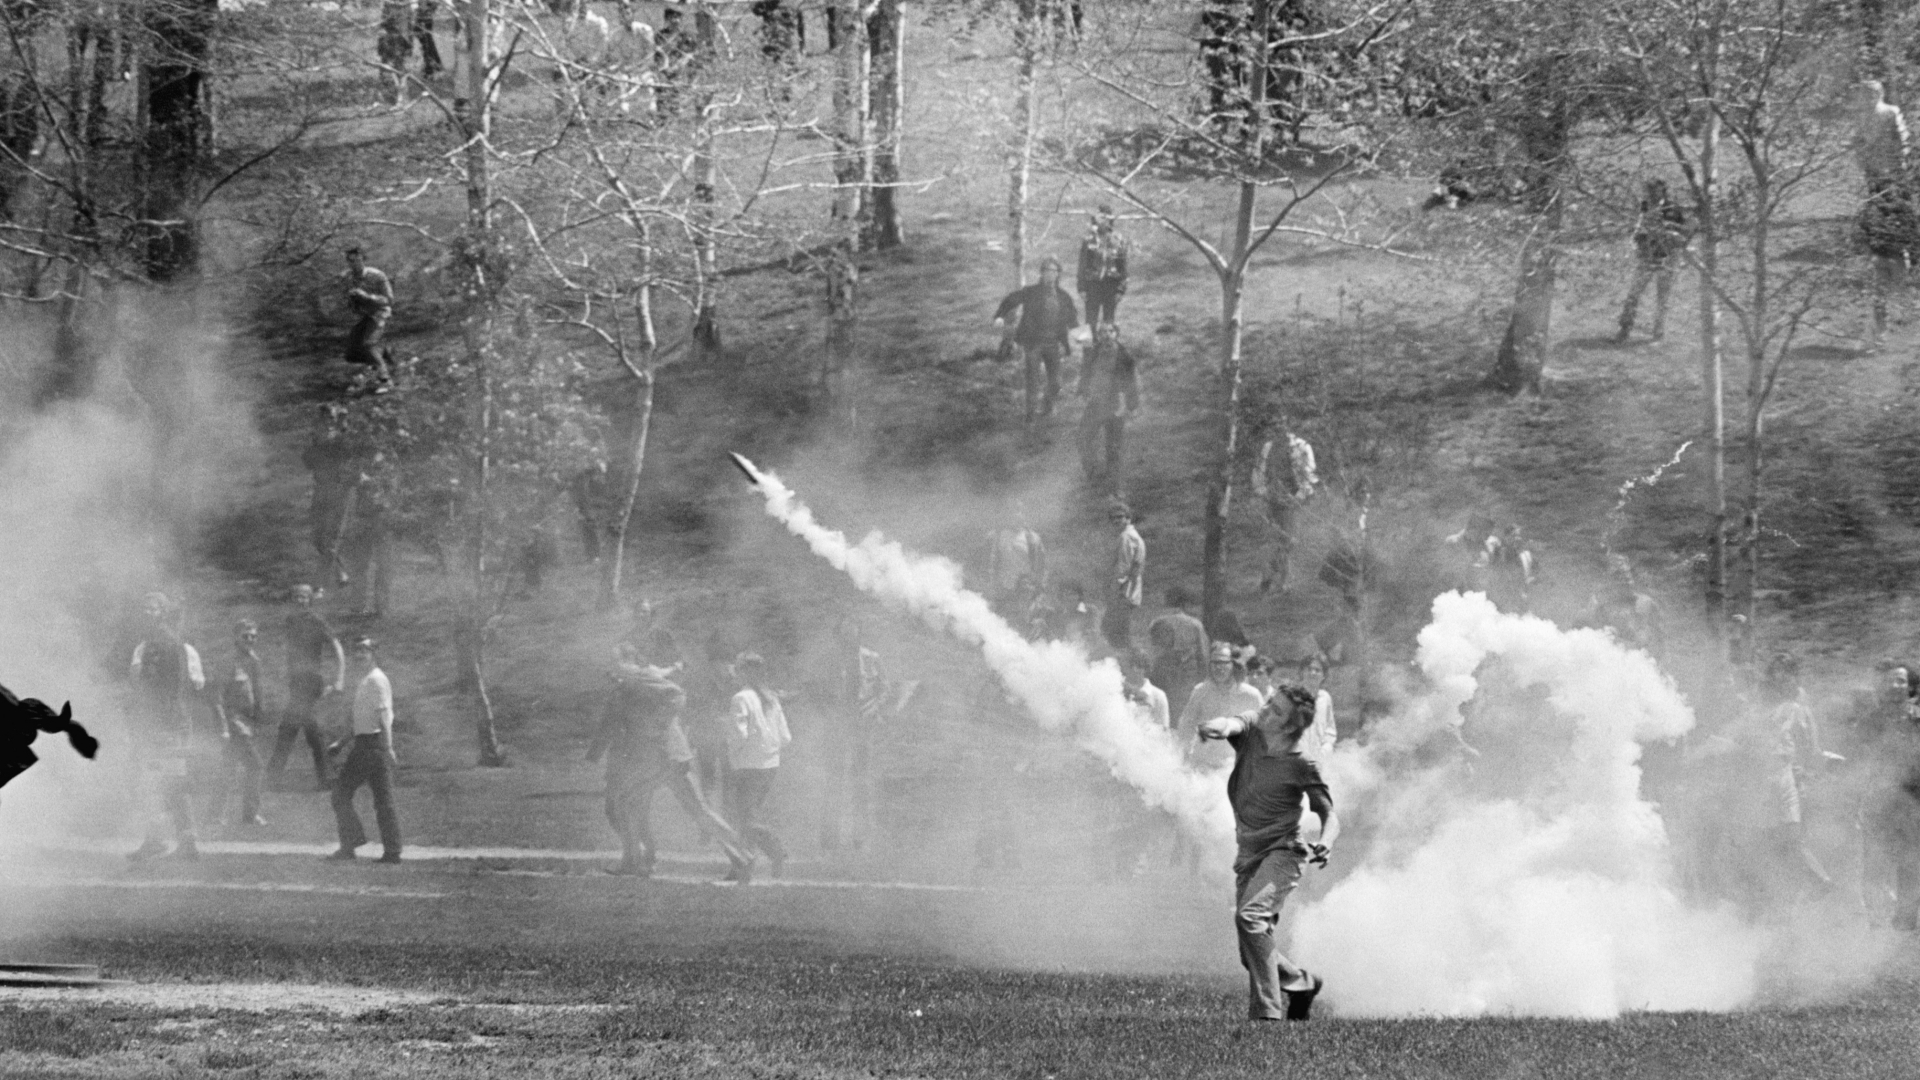 Kent State University student hurling a tear gas cannister back towards National Guardsmen as the military is called out May 4th to put down massive anti-war protest. (Credit: Bettmann Archive/Getty Images)